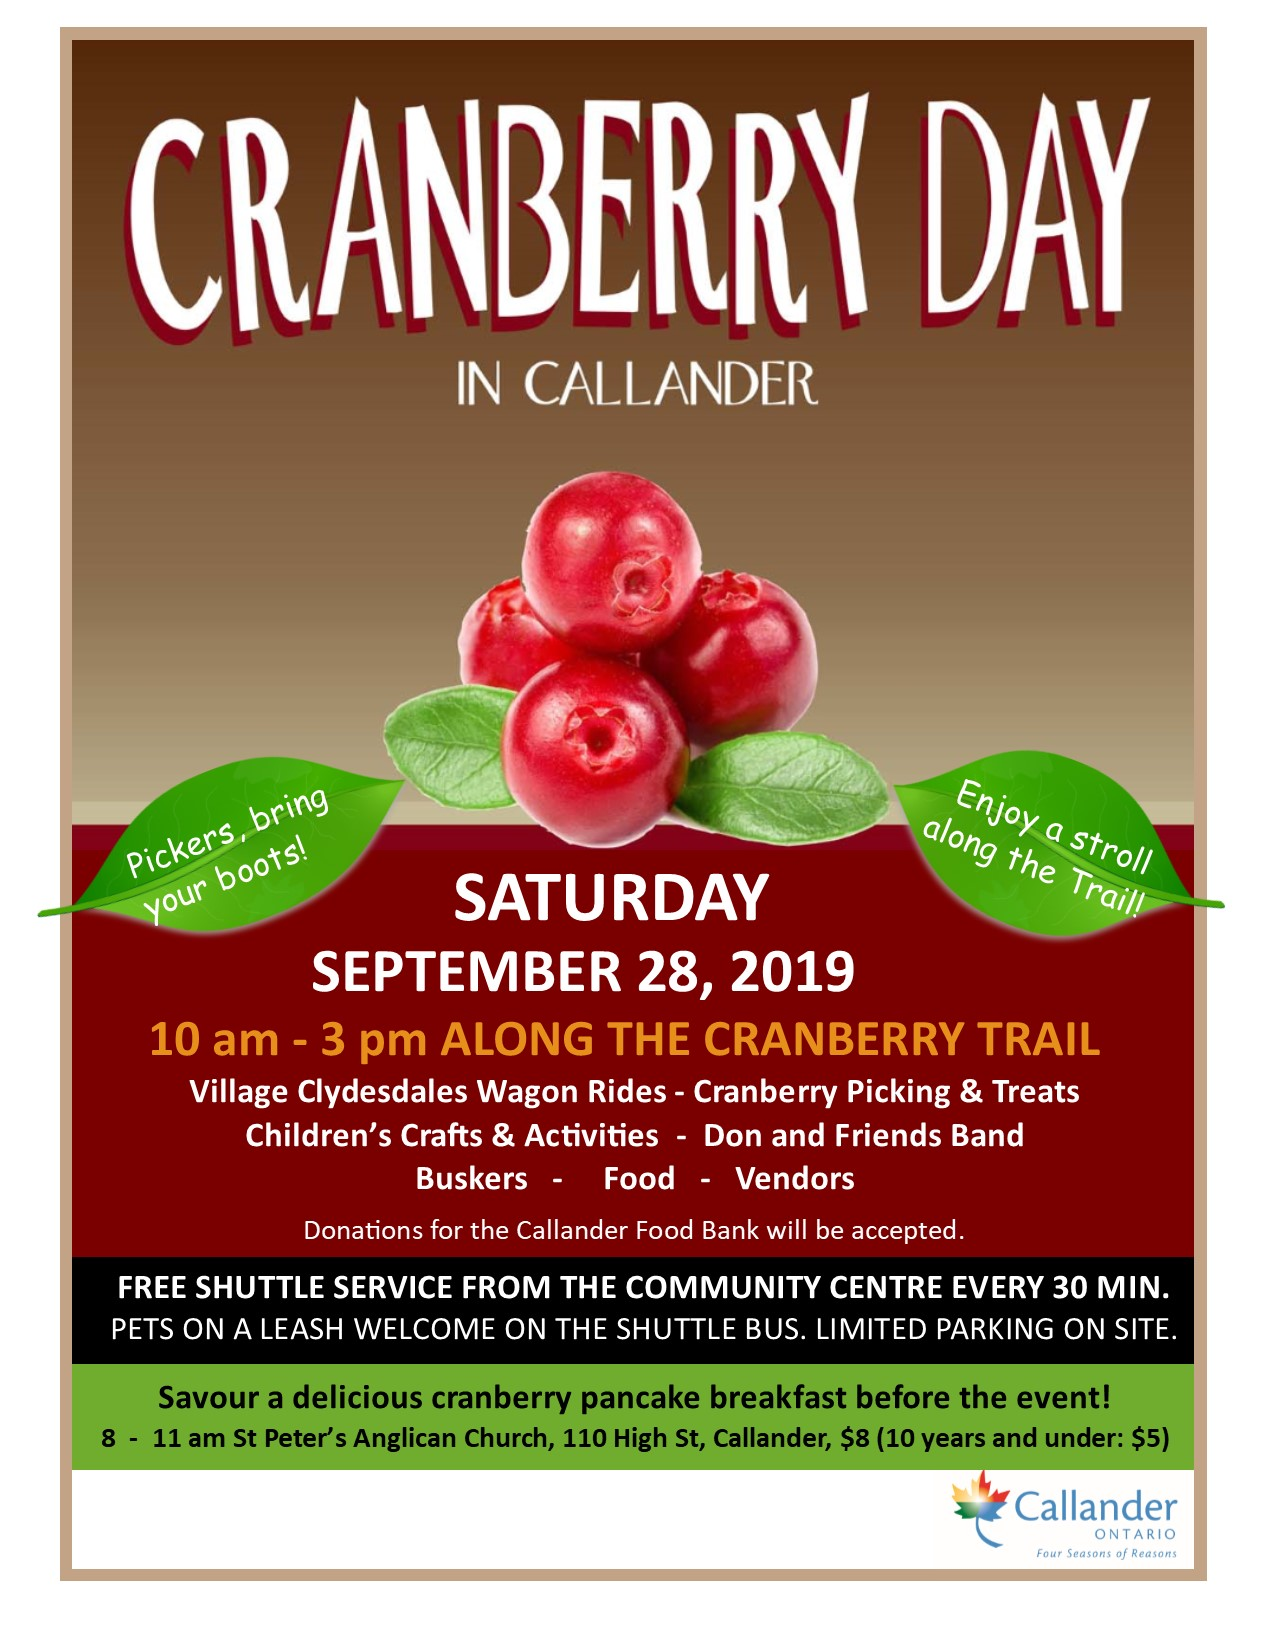 Cranberry Day in Callander